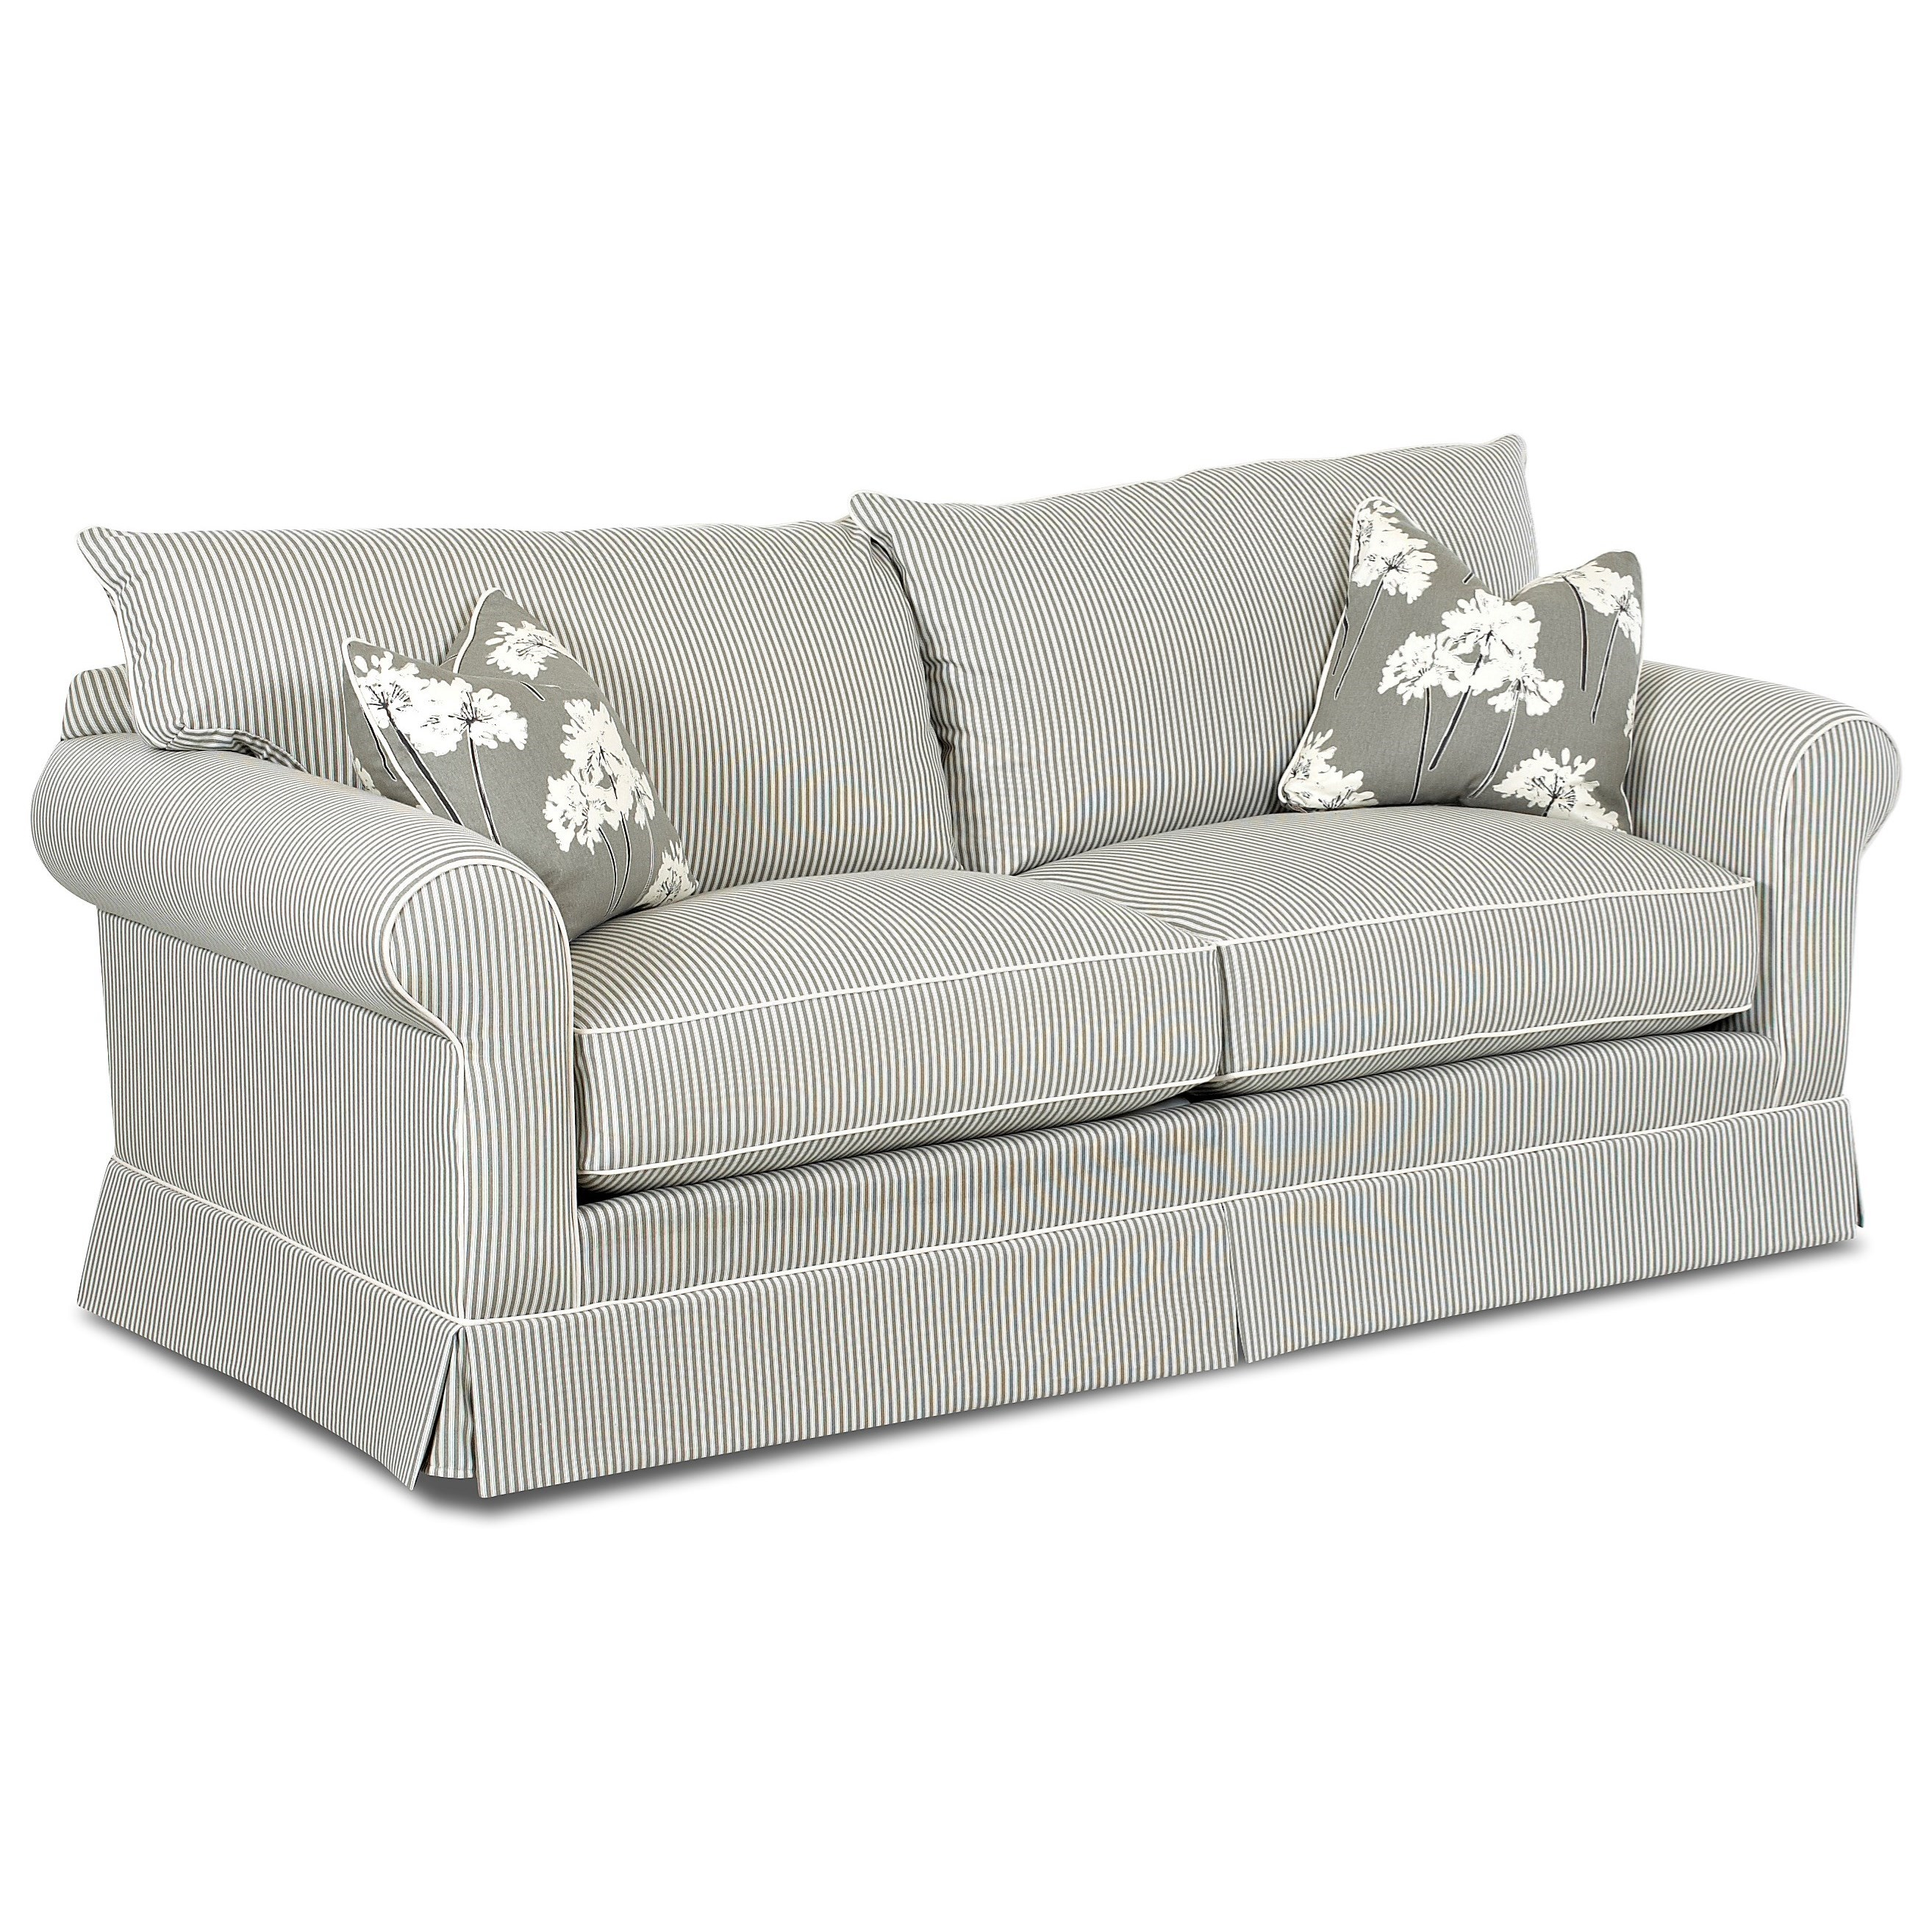 Klaussner Jenny Transitional Sofa With Skirt Value City